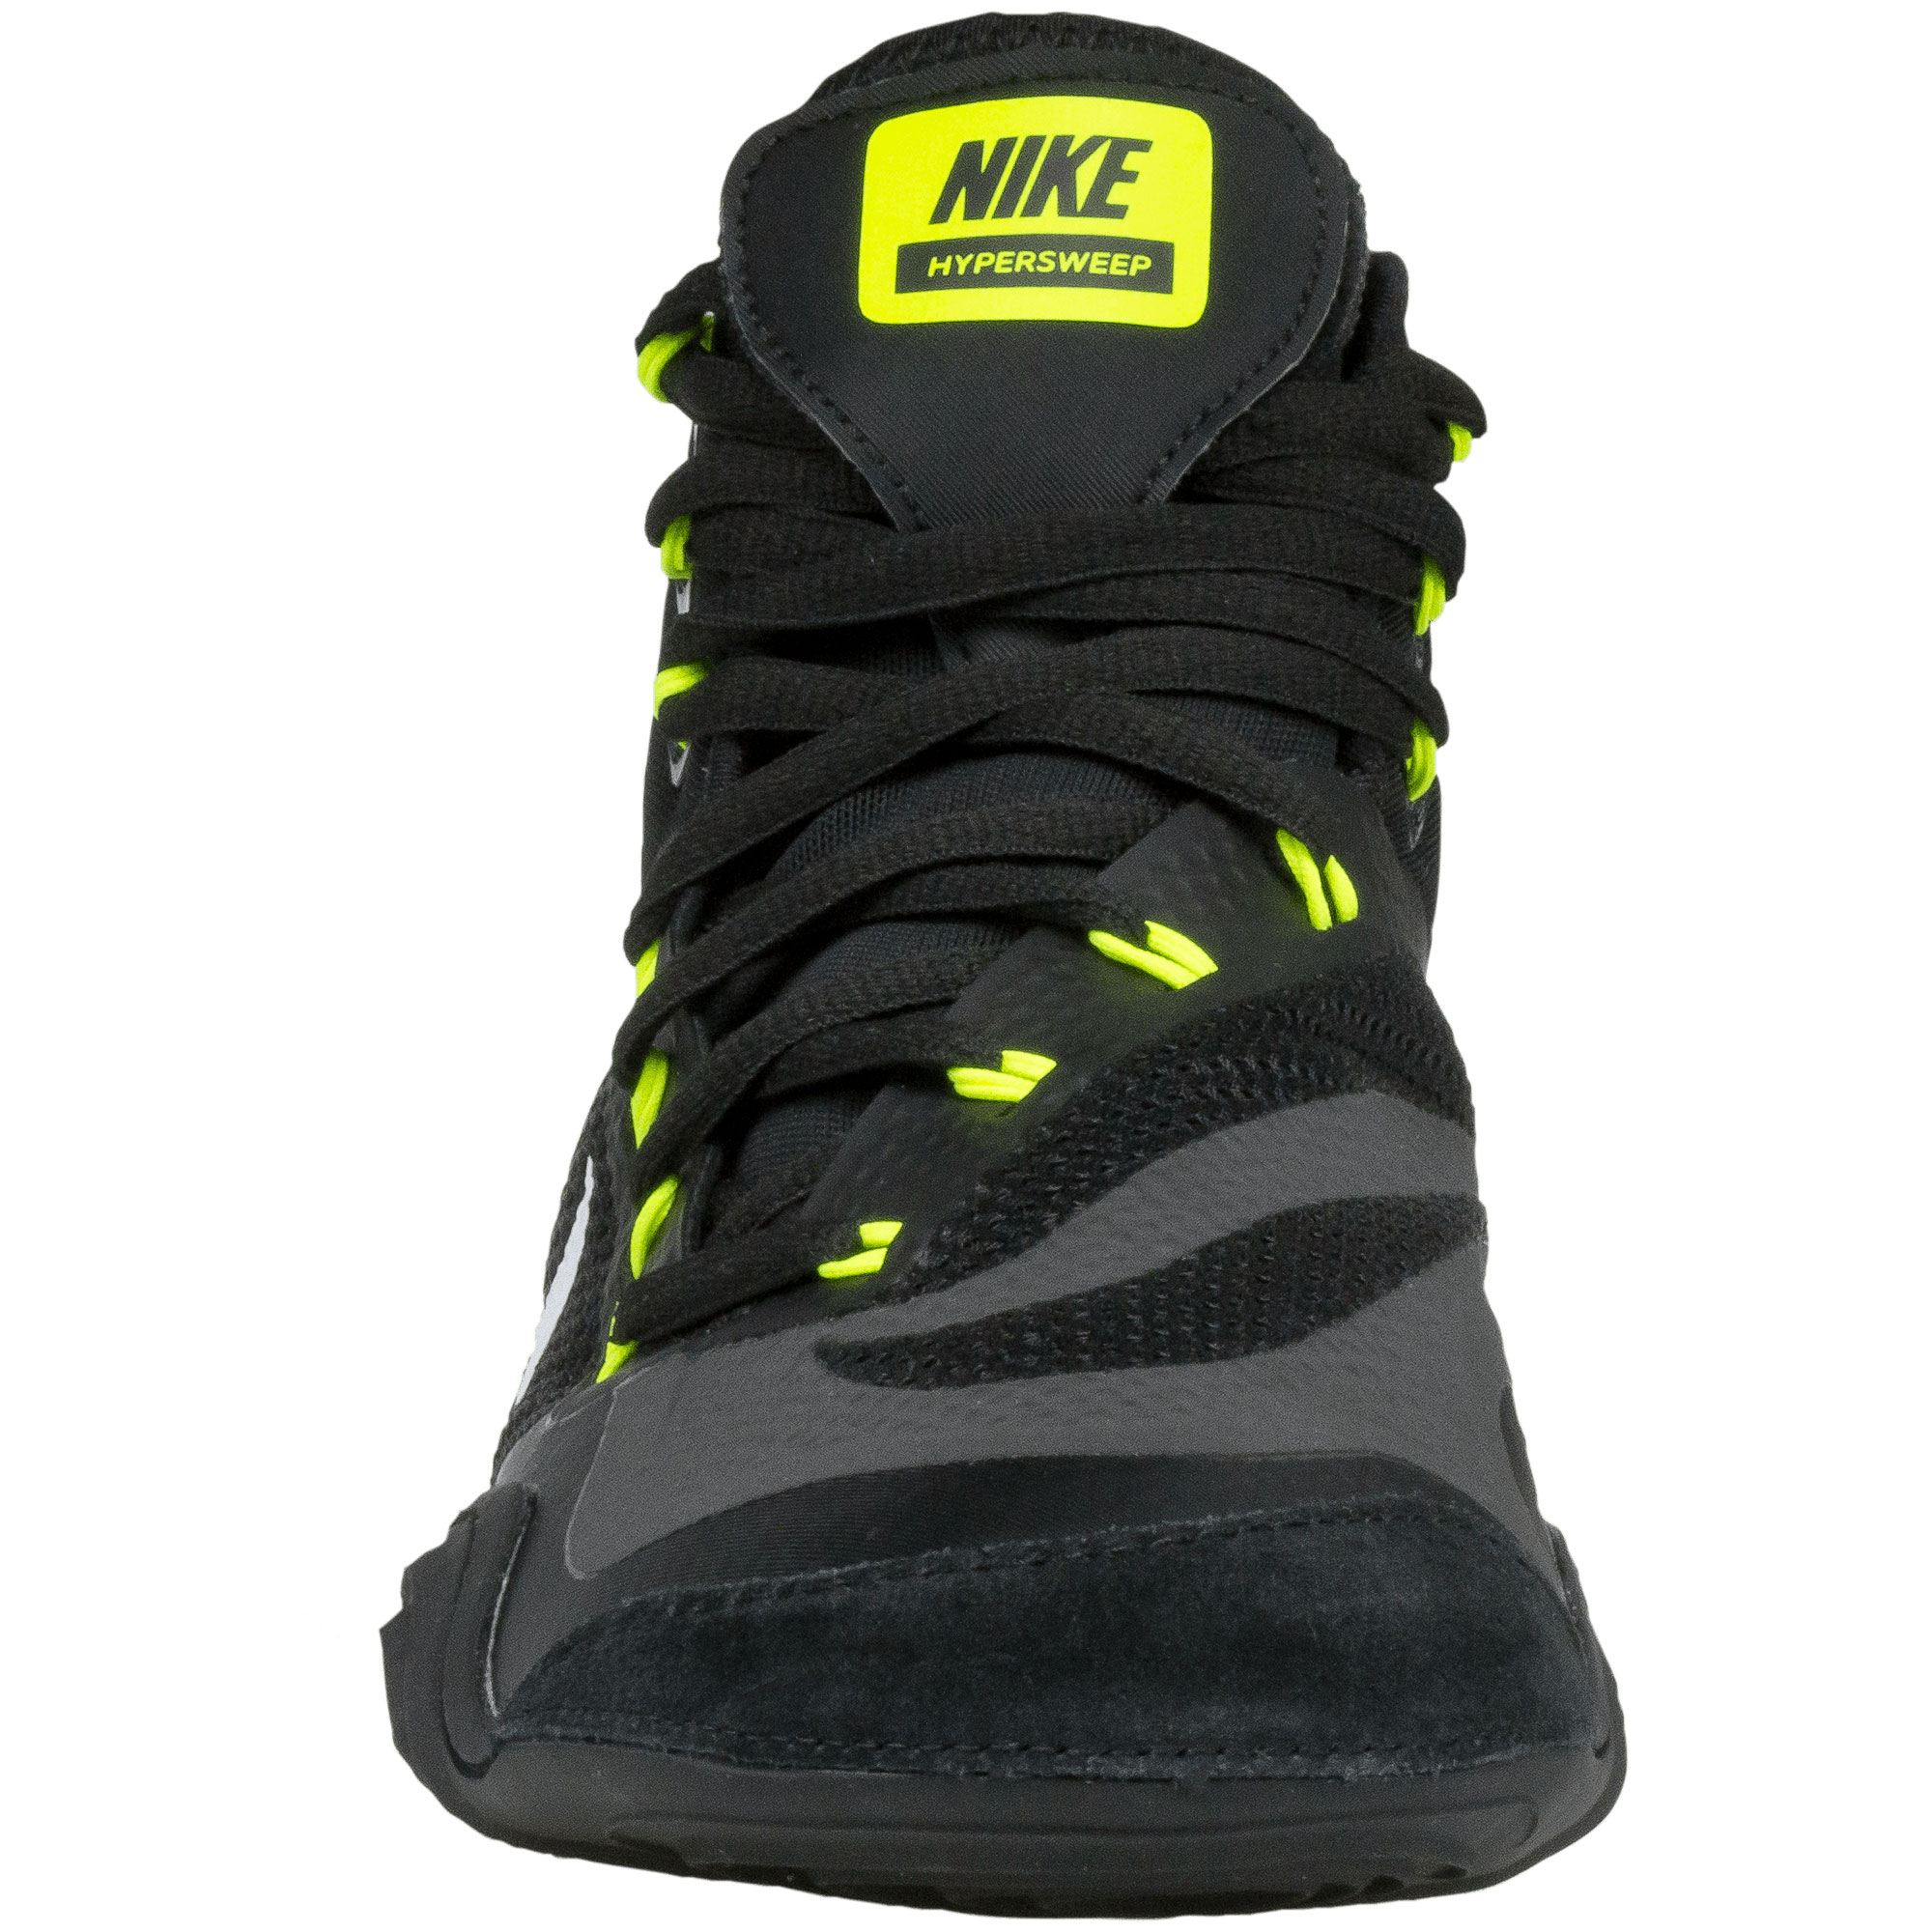 800c74f1383 Nike Hypersweep Shoes